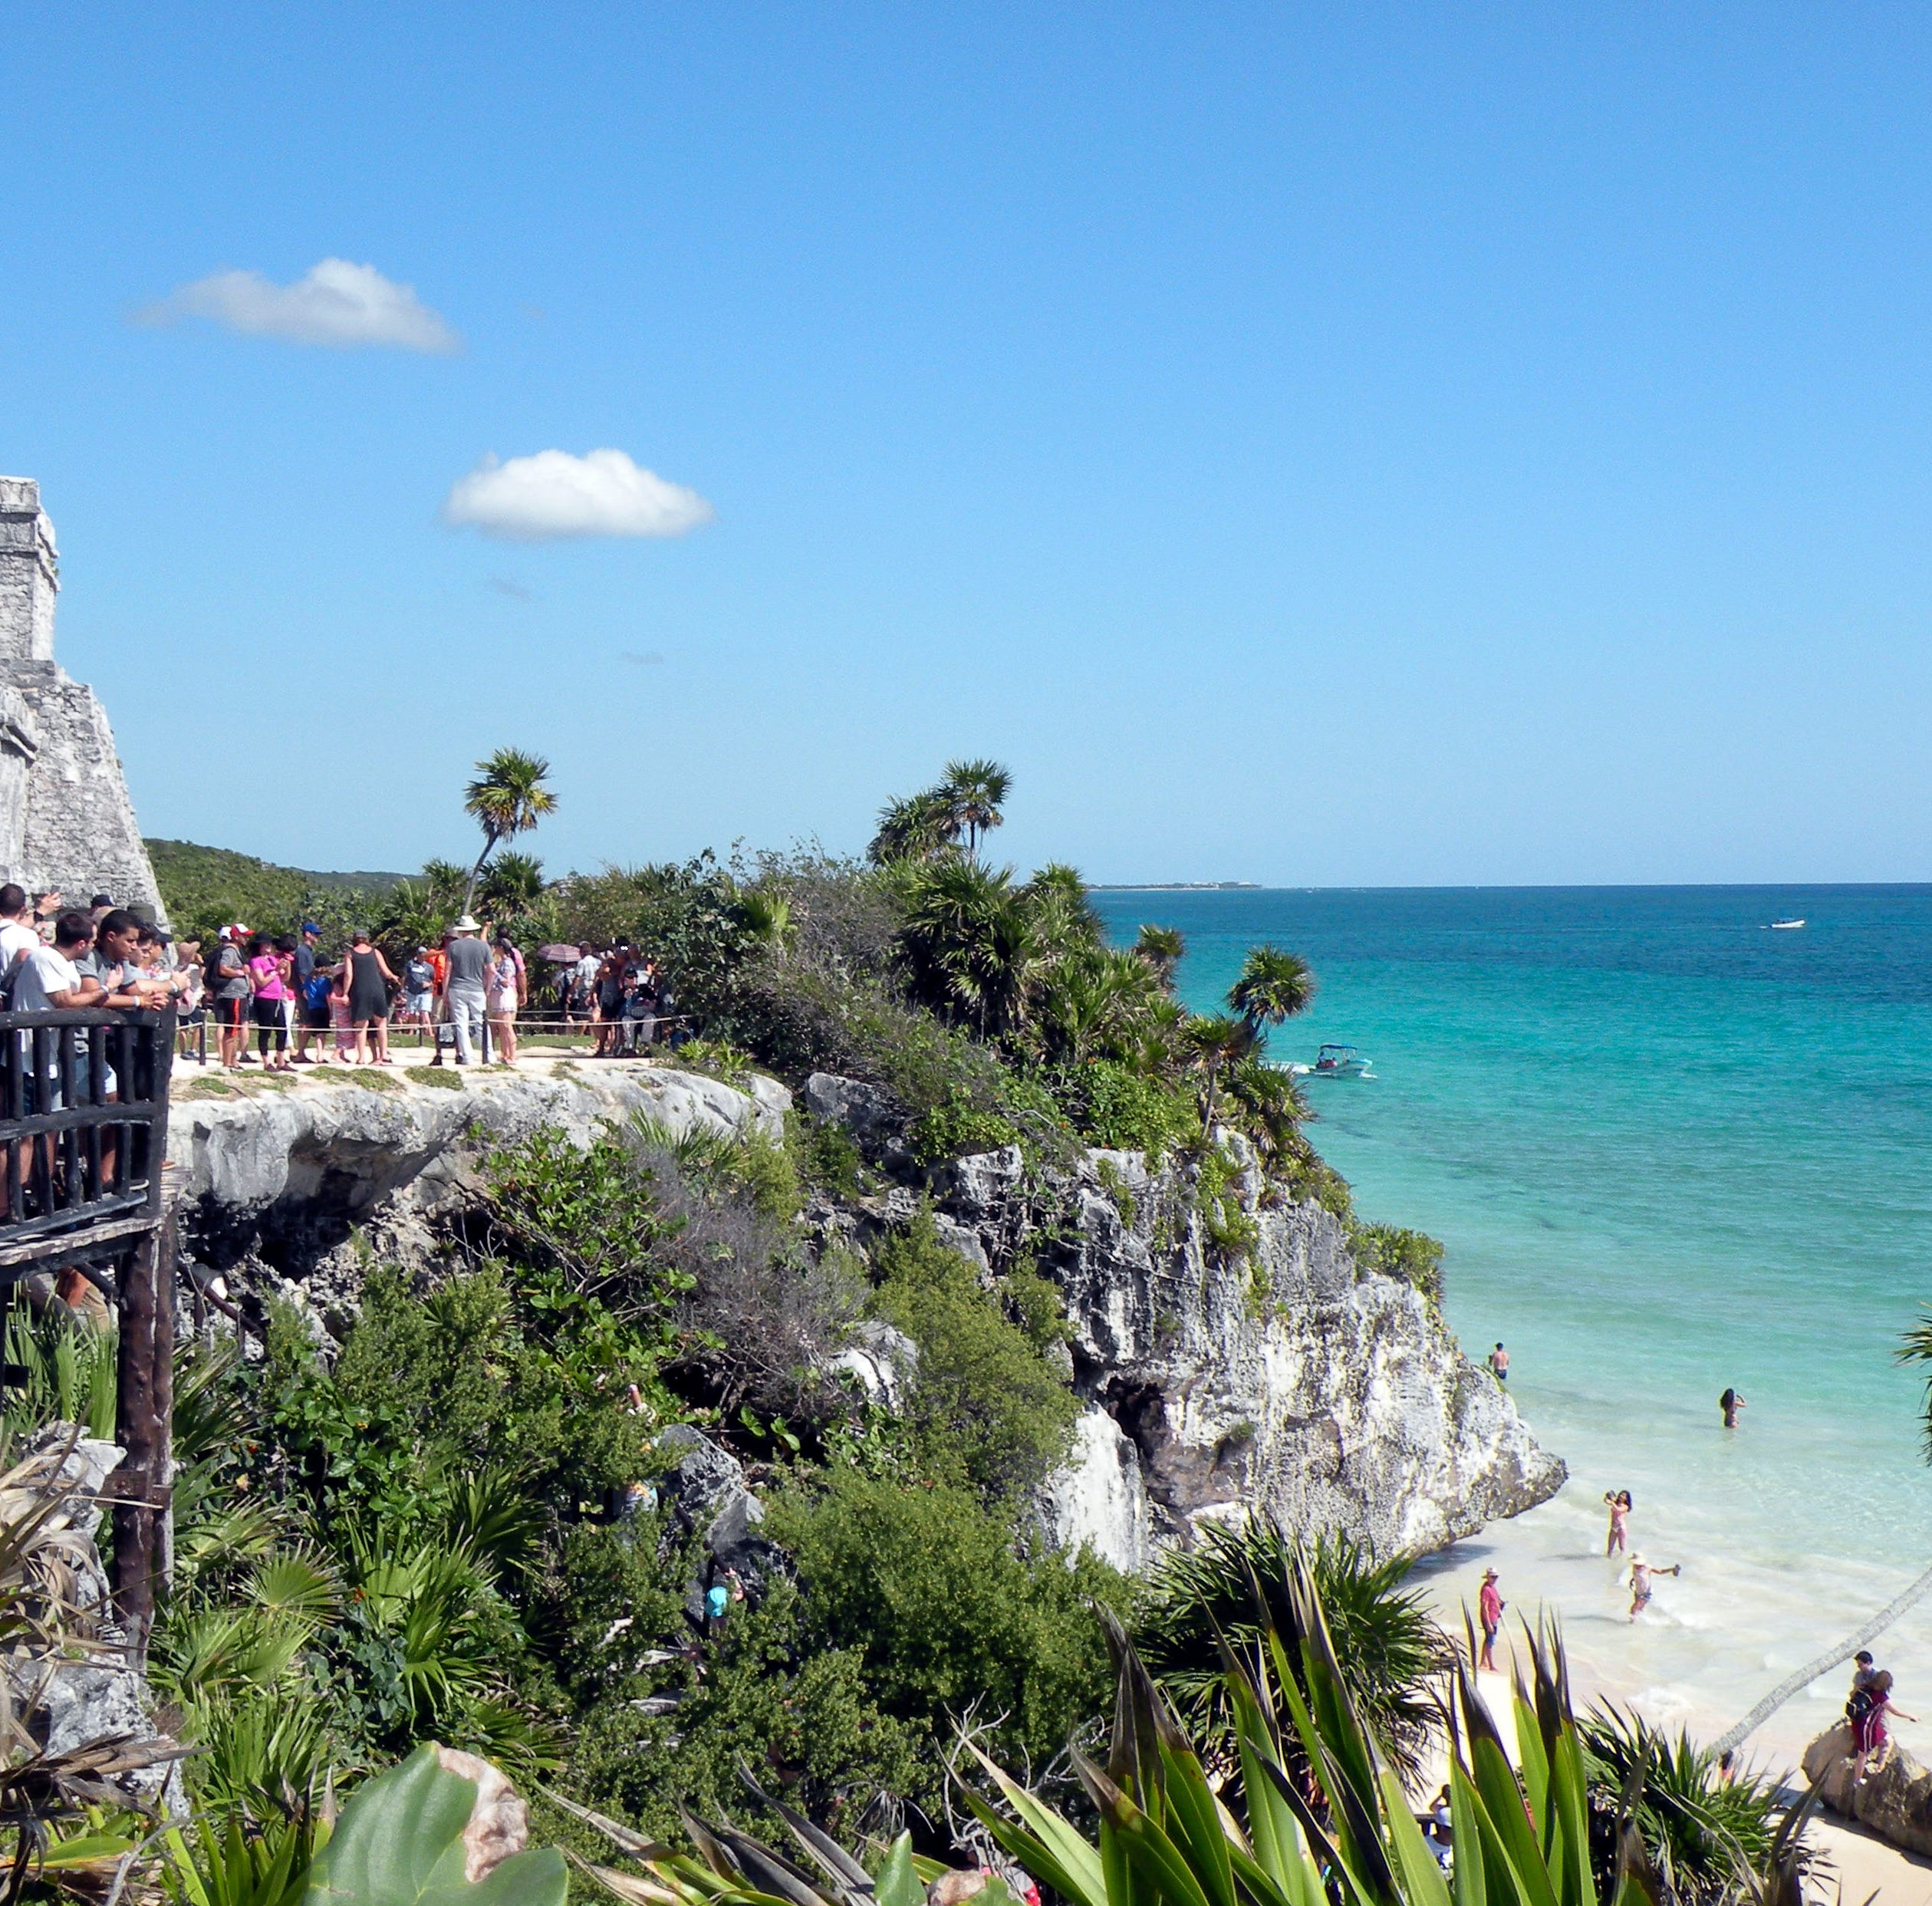 Travel: Visiting Mexico's Yucatan Peninsula reveals picturesque small towns